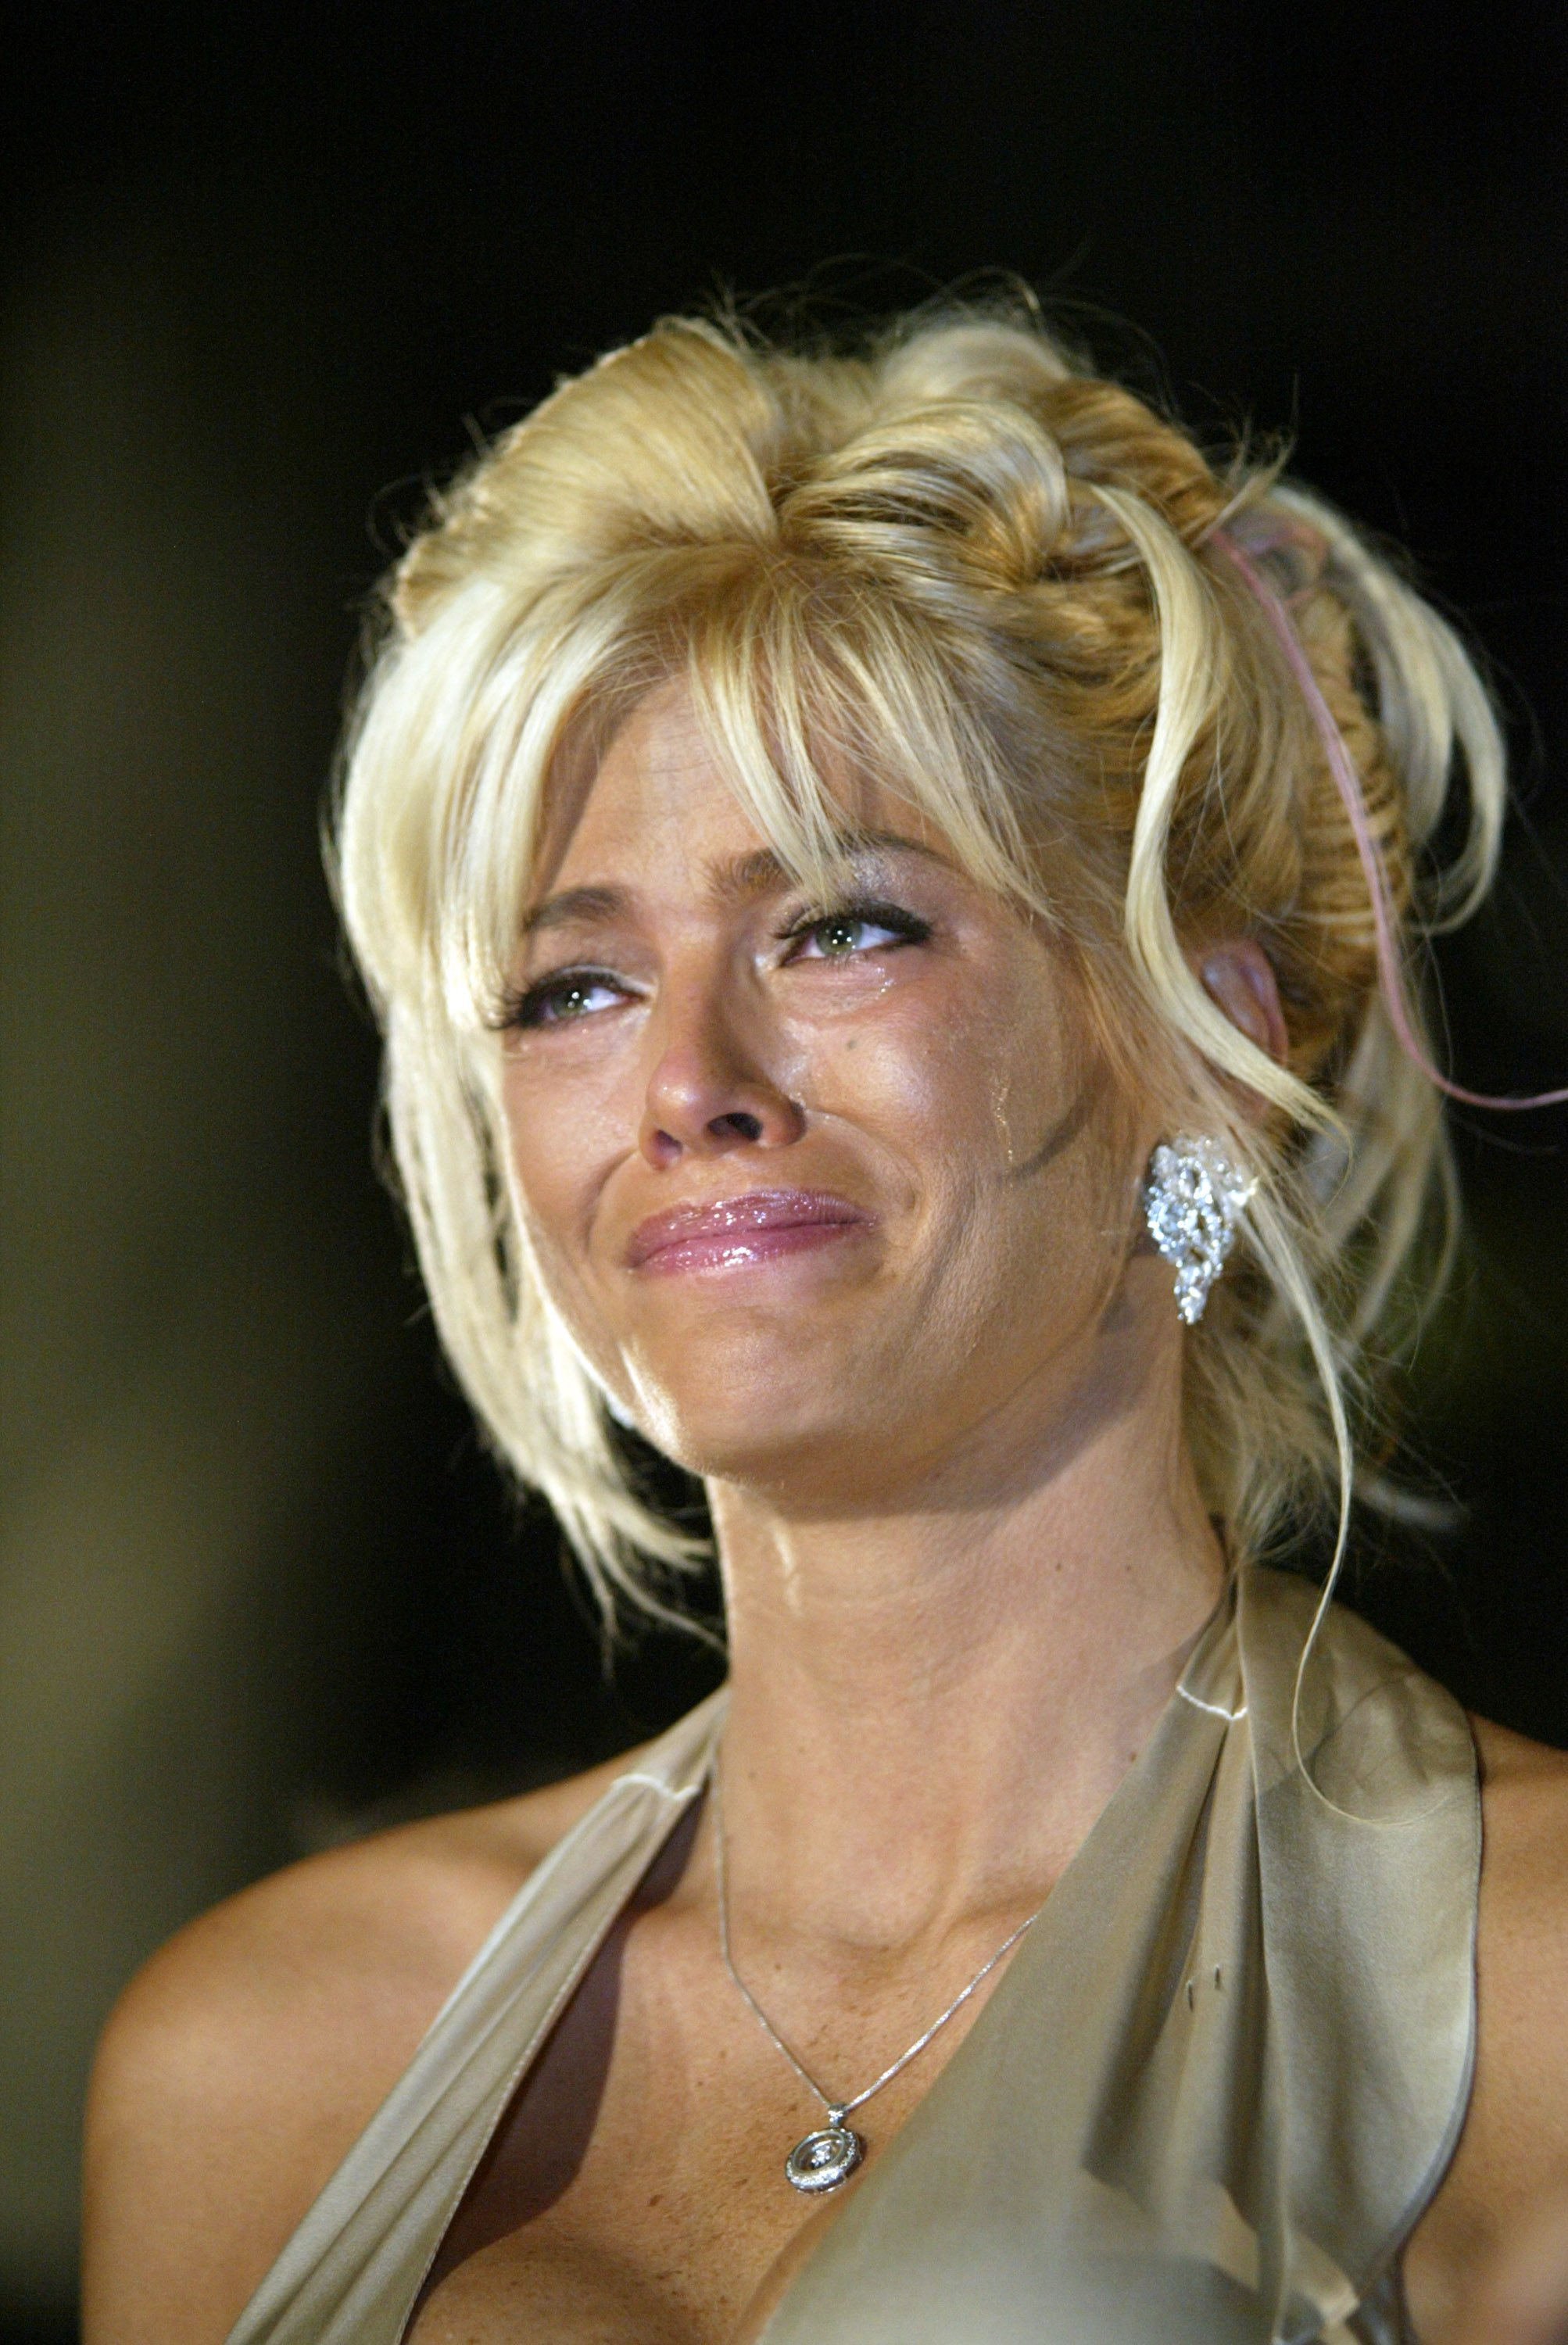 Former Playboy Playmate Anna Nicole Smith | Getty Images/ Global Images Ukraine